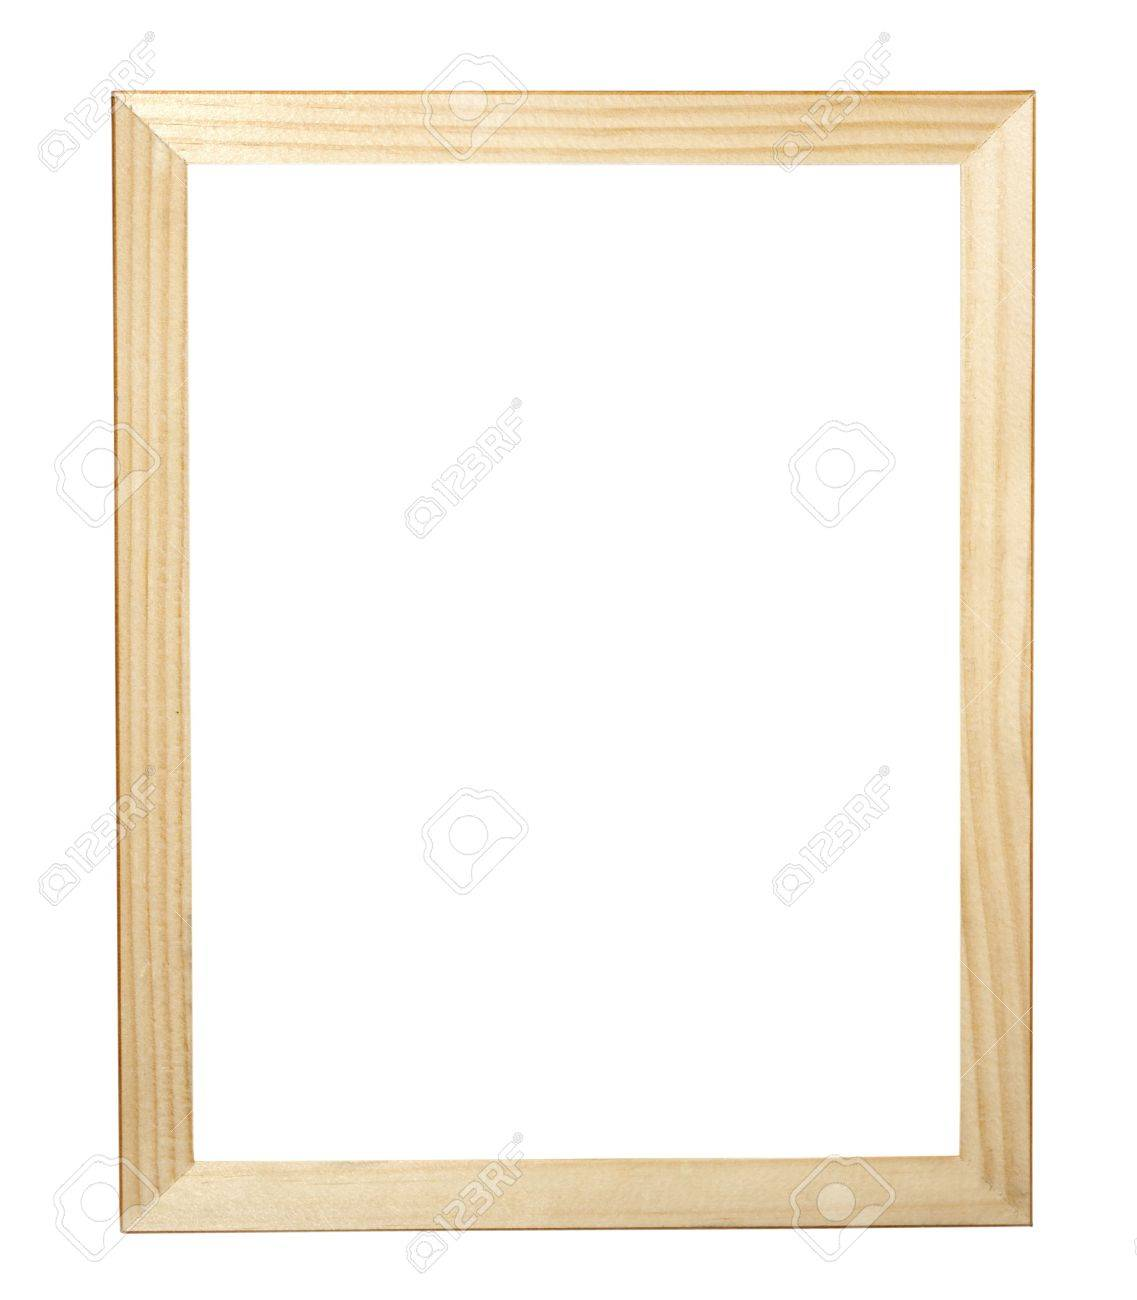 Wooden Frame For Painting Or Picture Stock Photo, Picture And ...